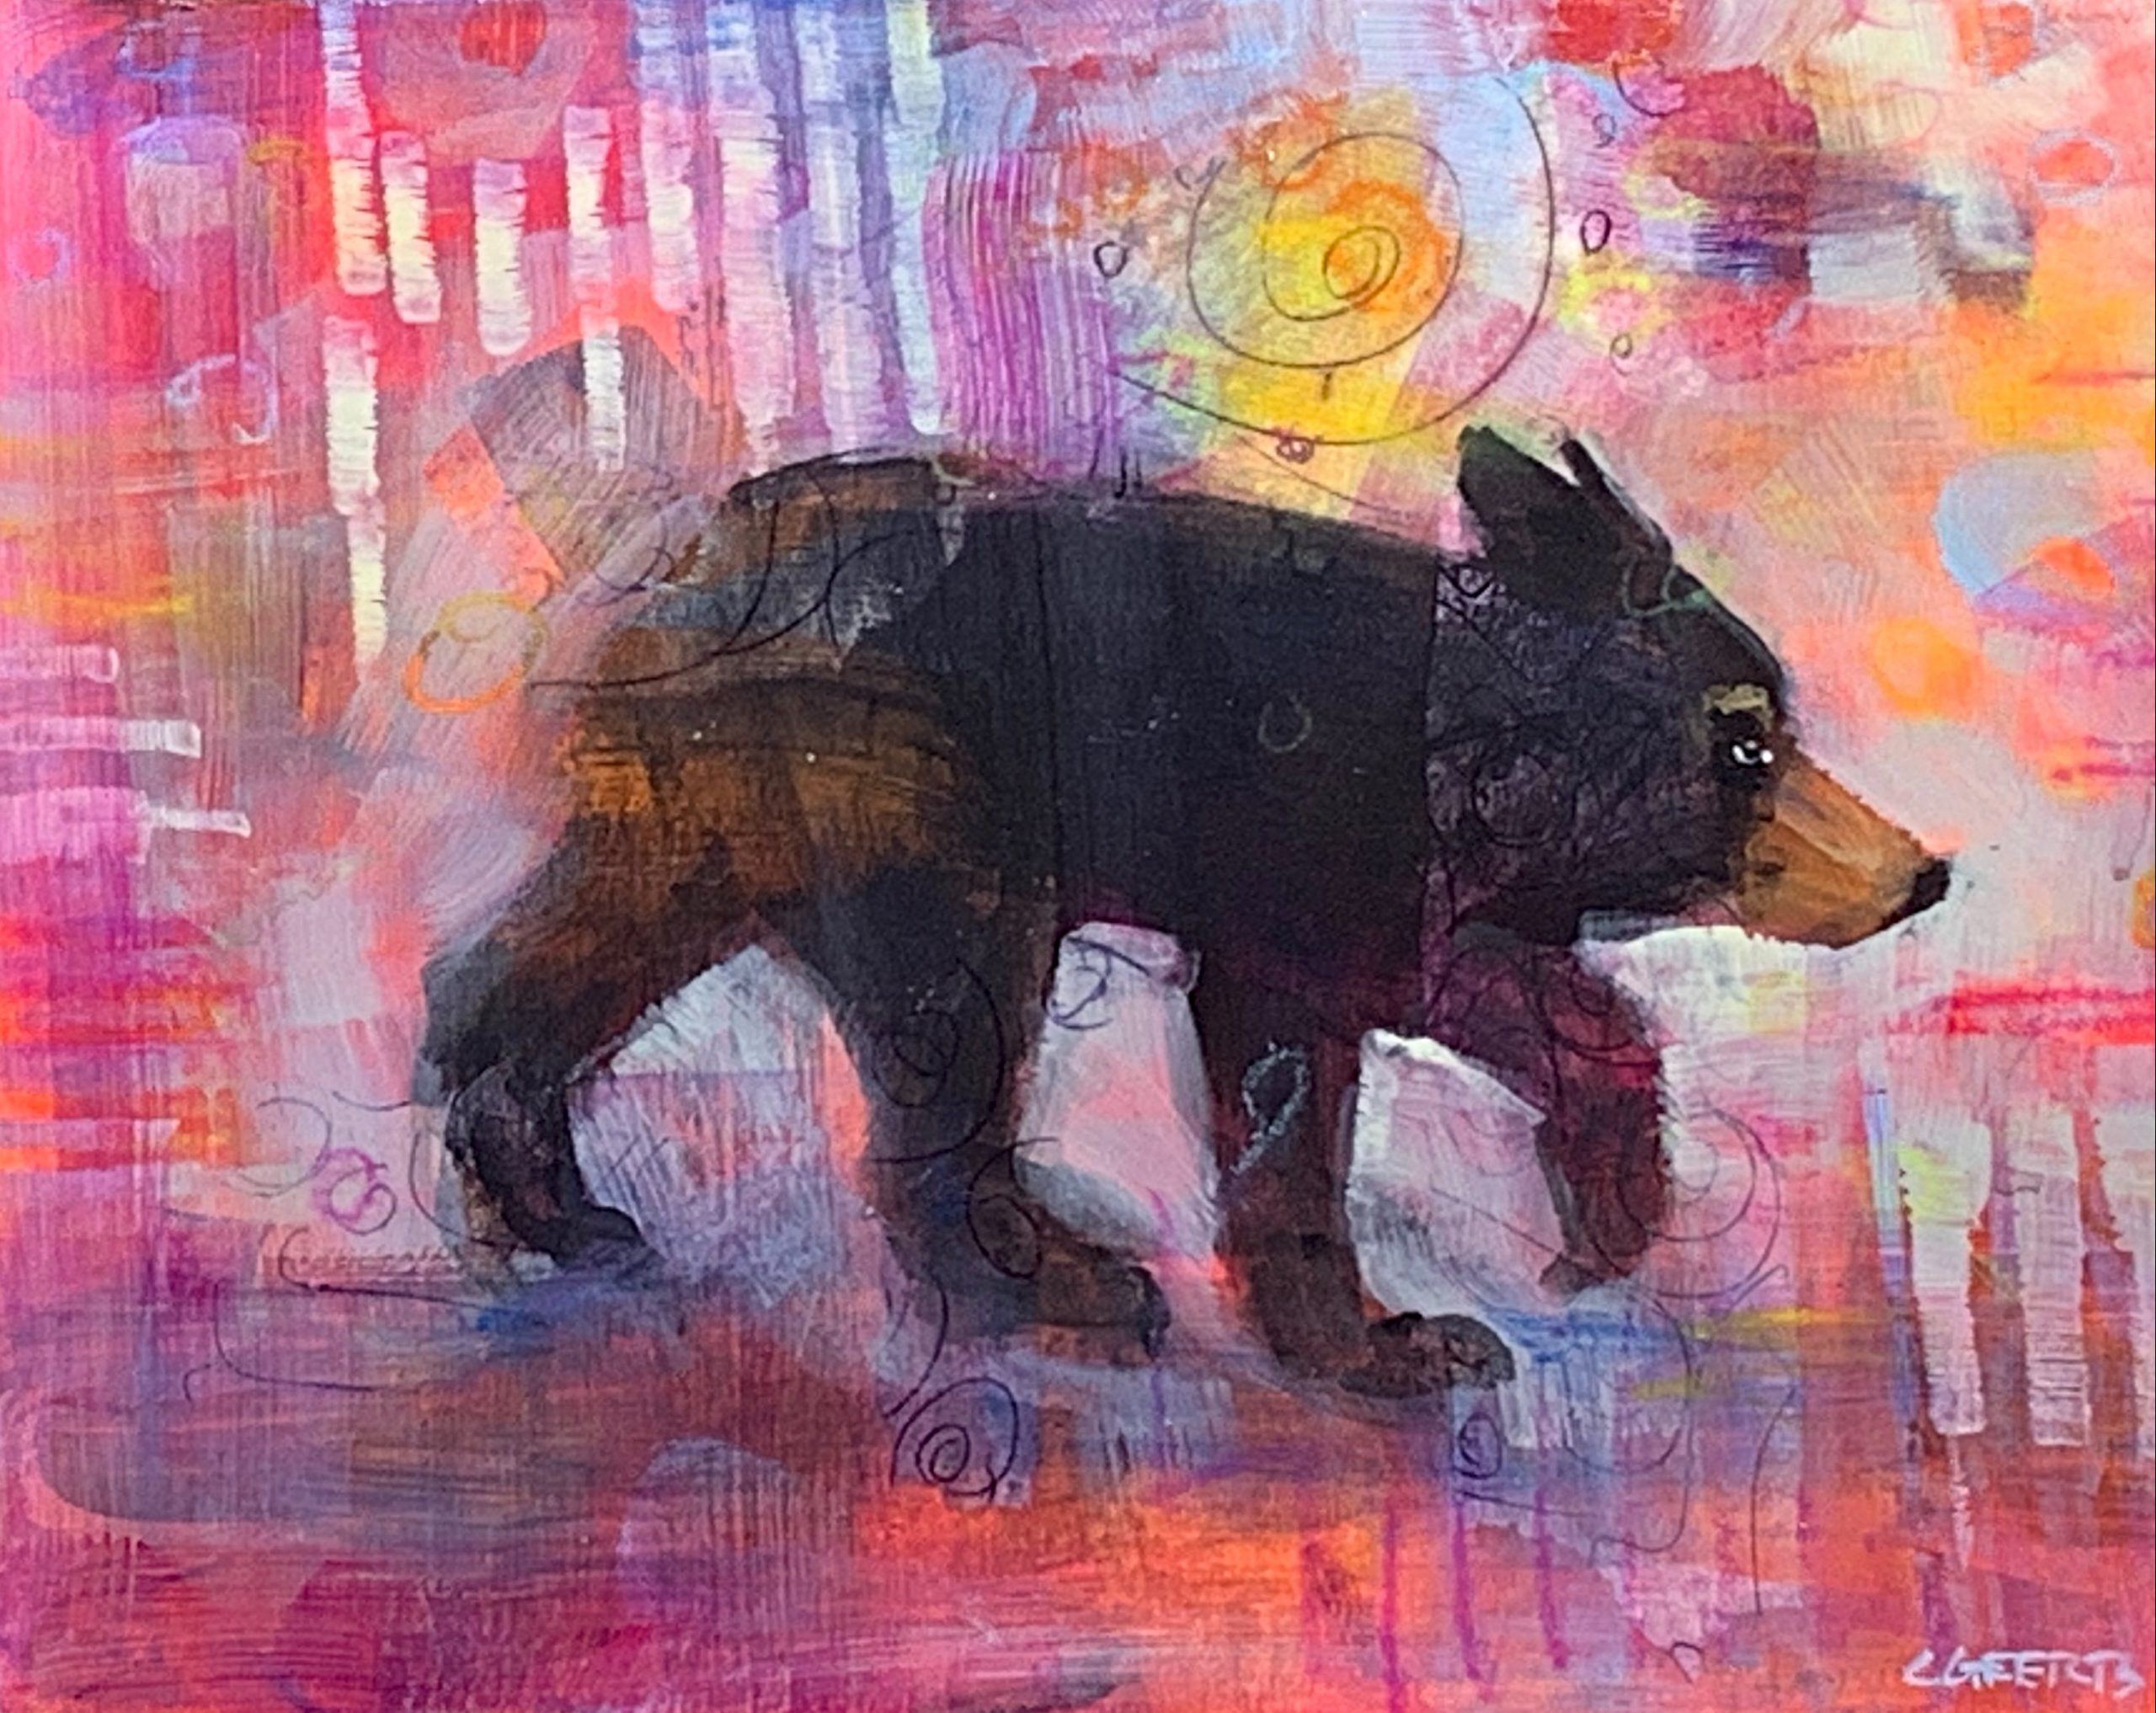 Places to be, mixed media bear painting by Connie Geerts | Effusion Art Gallery + Cast Glass Studio, Invermere BC